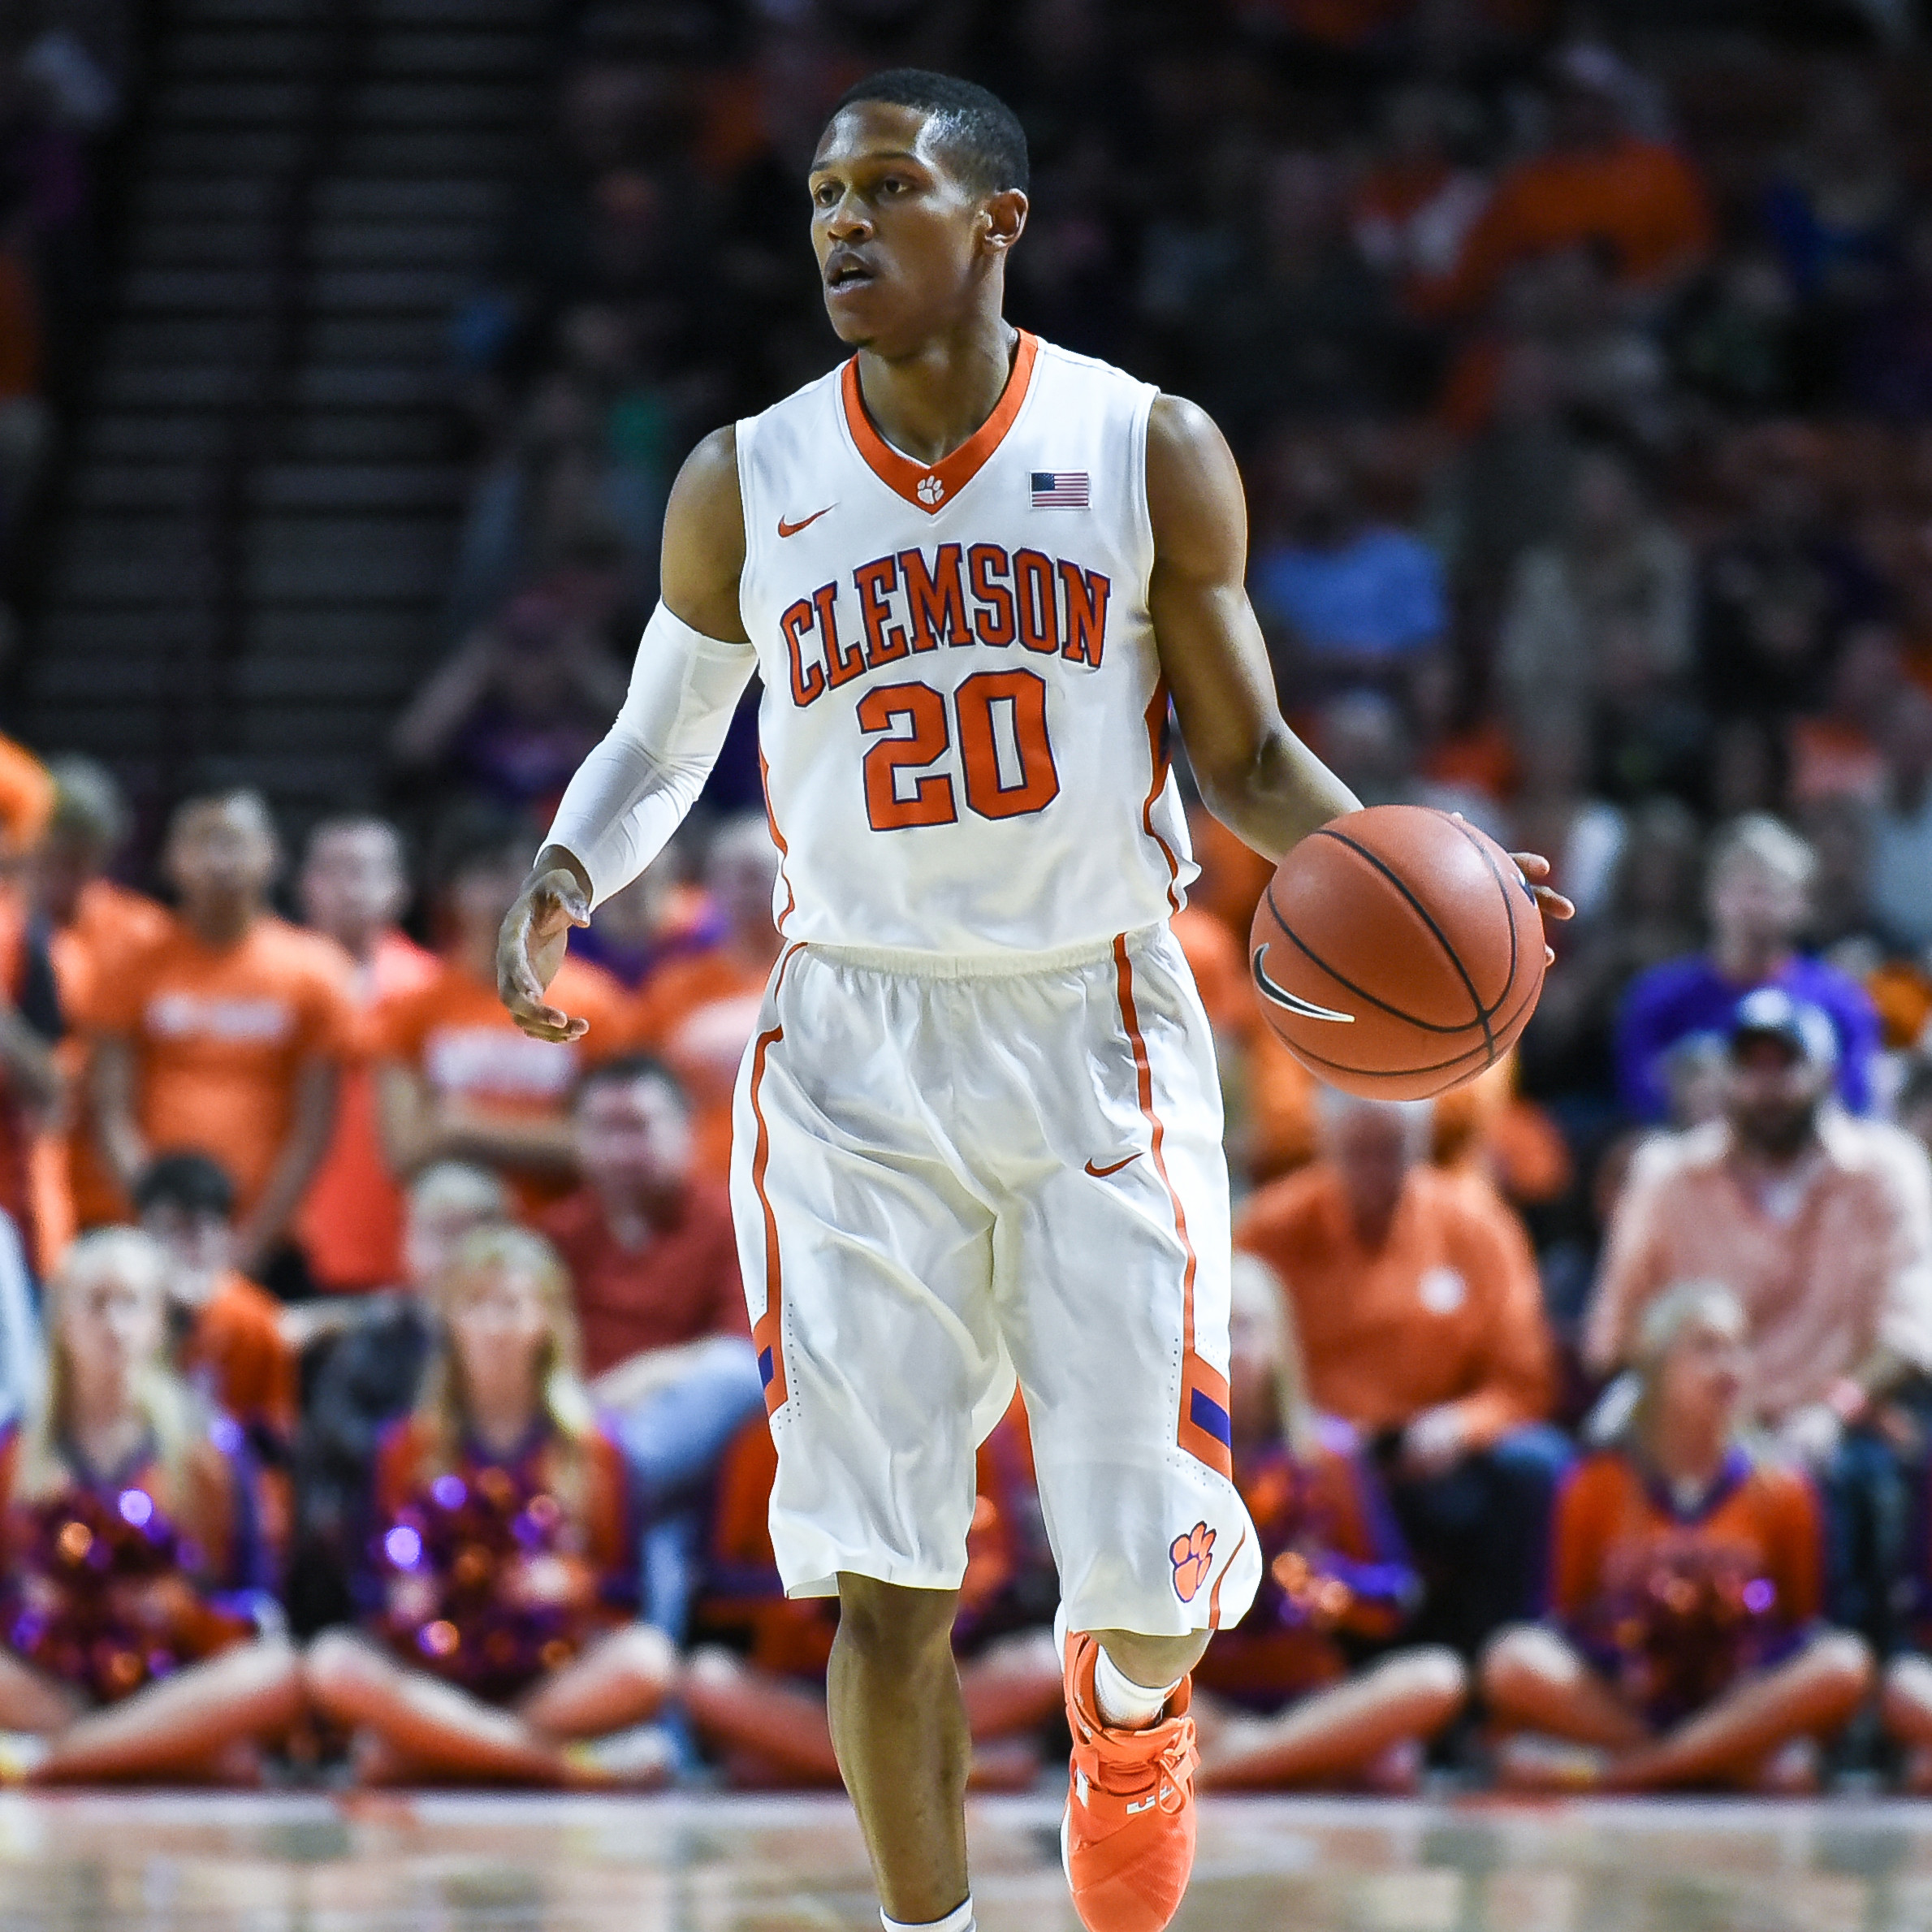 Tigers Host Irish in Monday Showdown